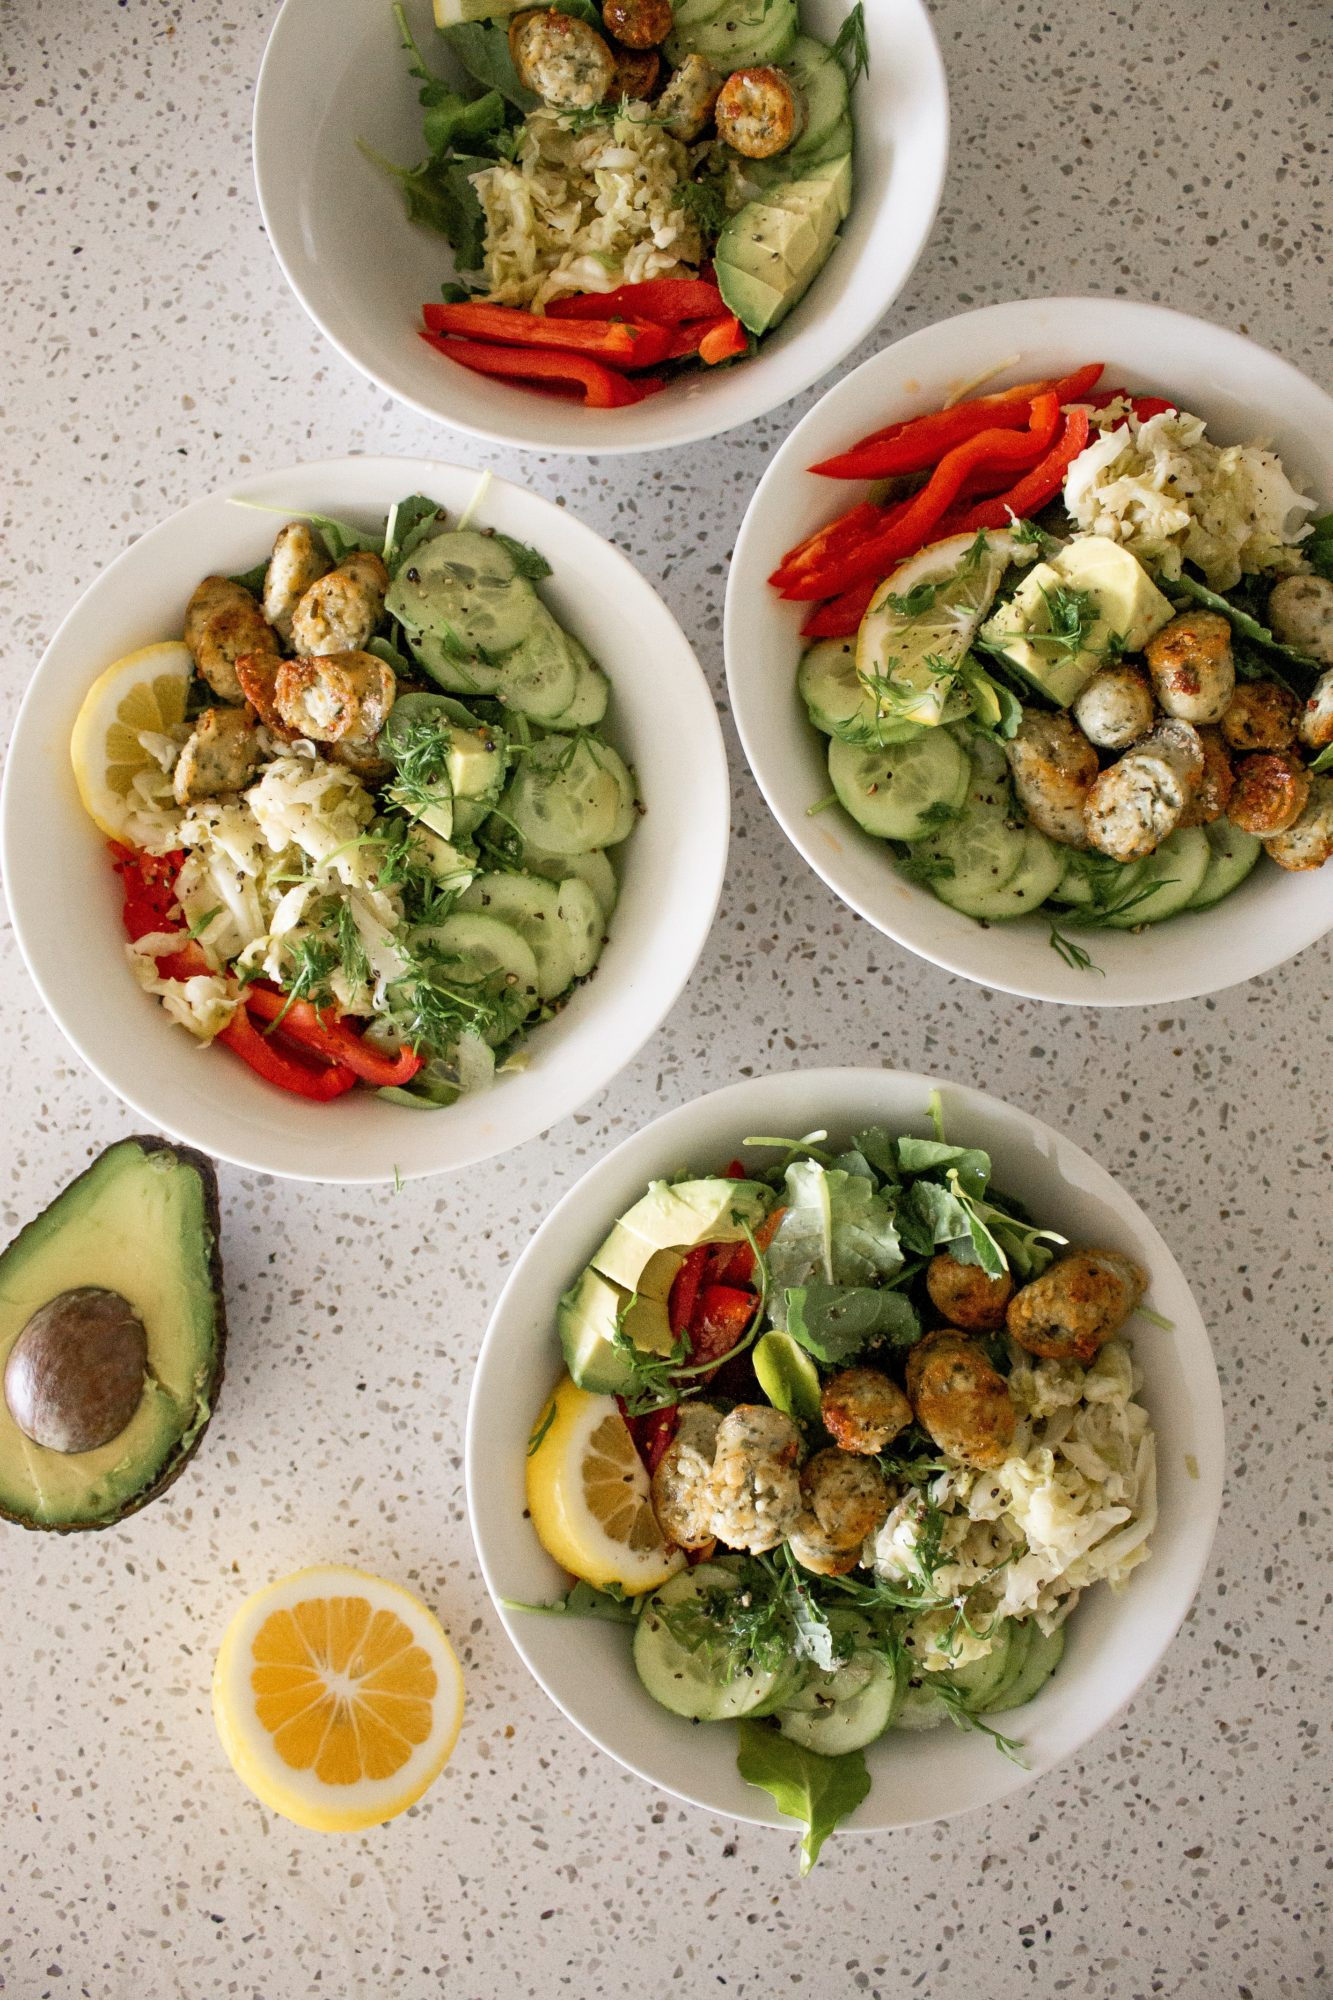 Recipe: Protein & Greens Power Bowl